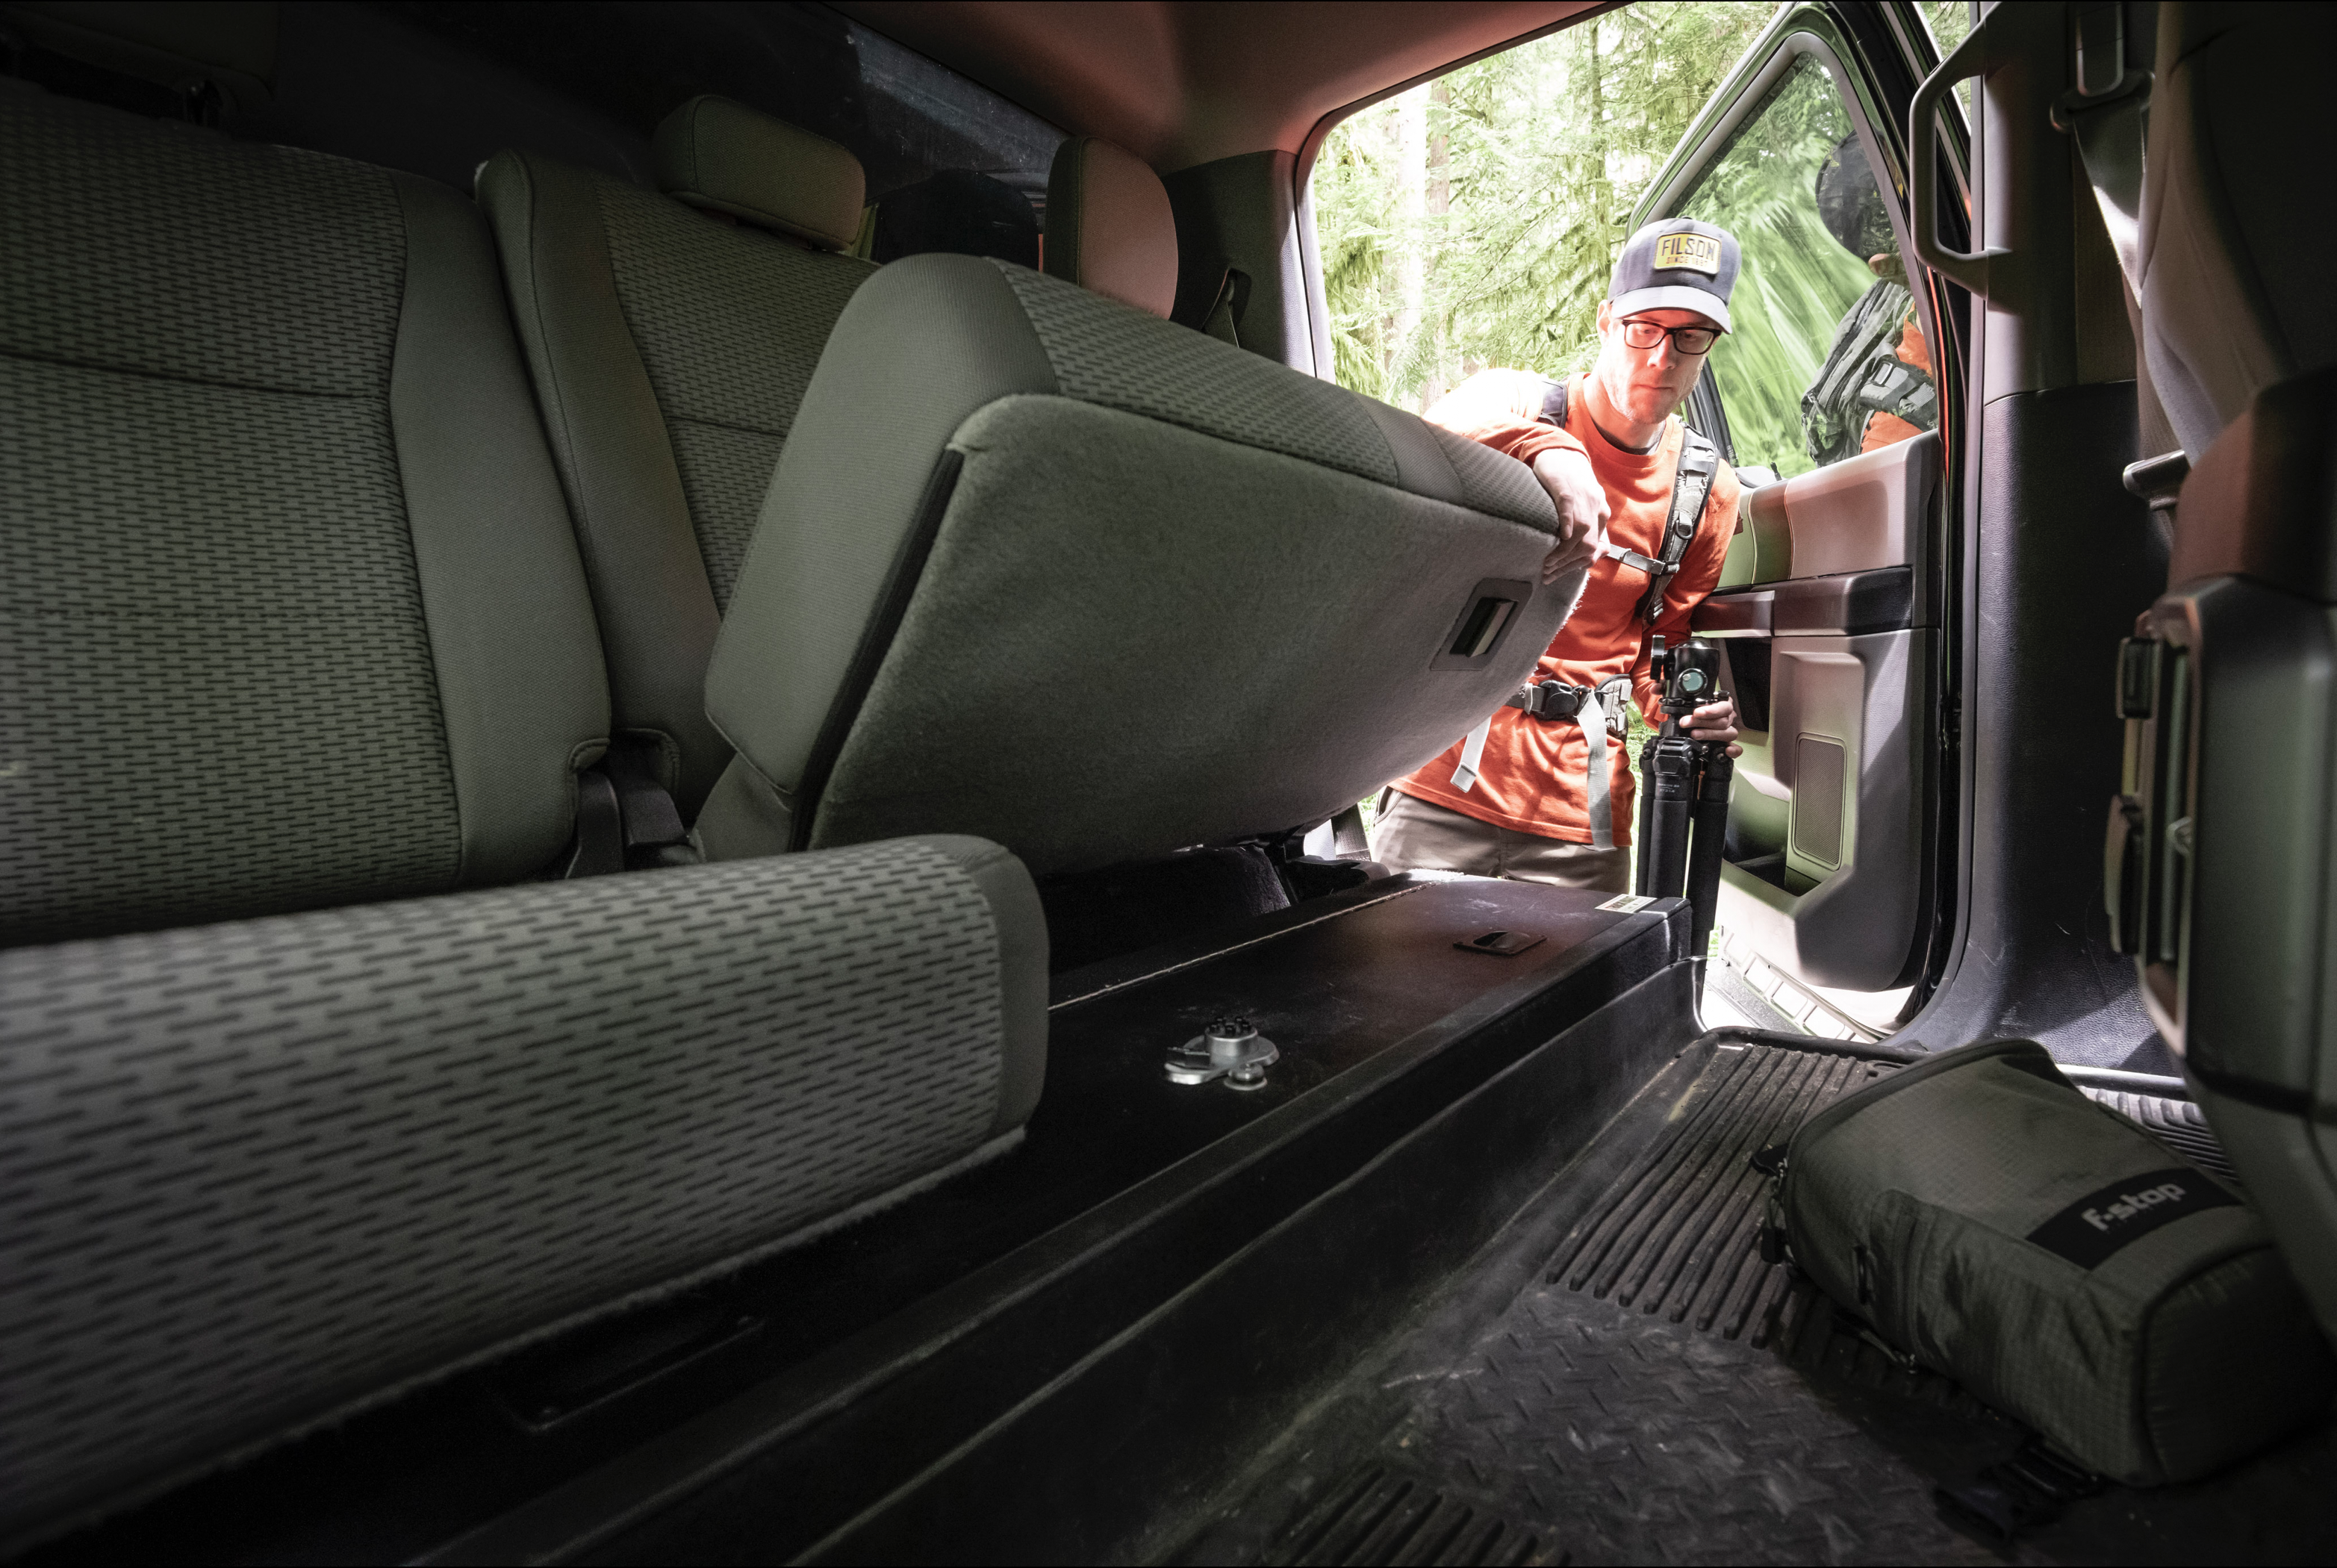 SeatVault TruckVault in the cab of a 2017 Ford F150.